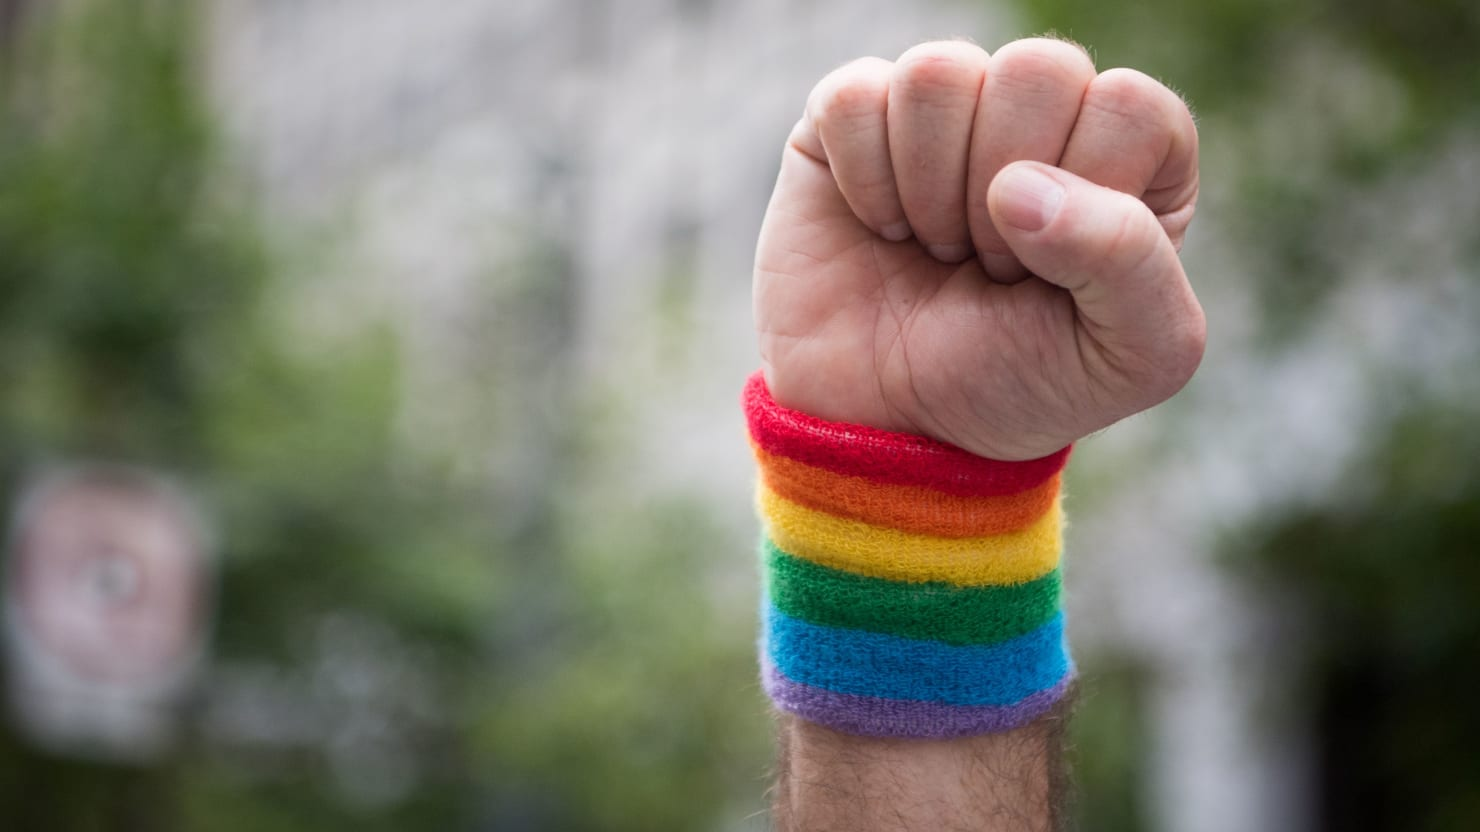 Nevada Becomes Fourth U.S. State to Outlaw Gay and Trans 'Panic Defense' in Court